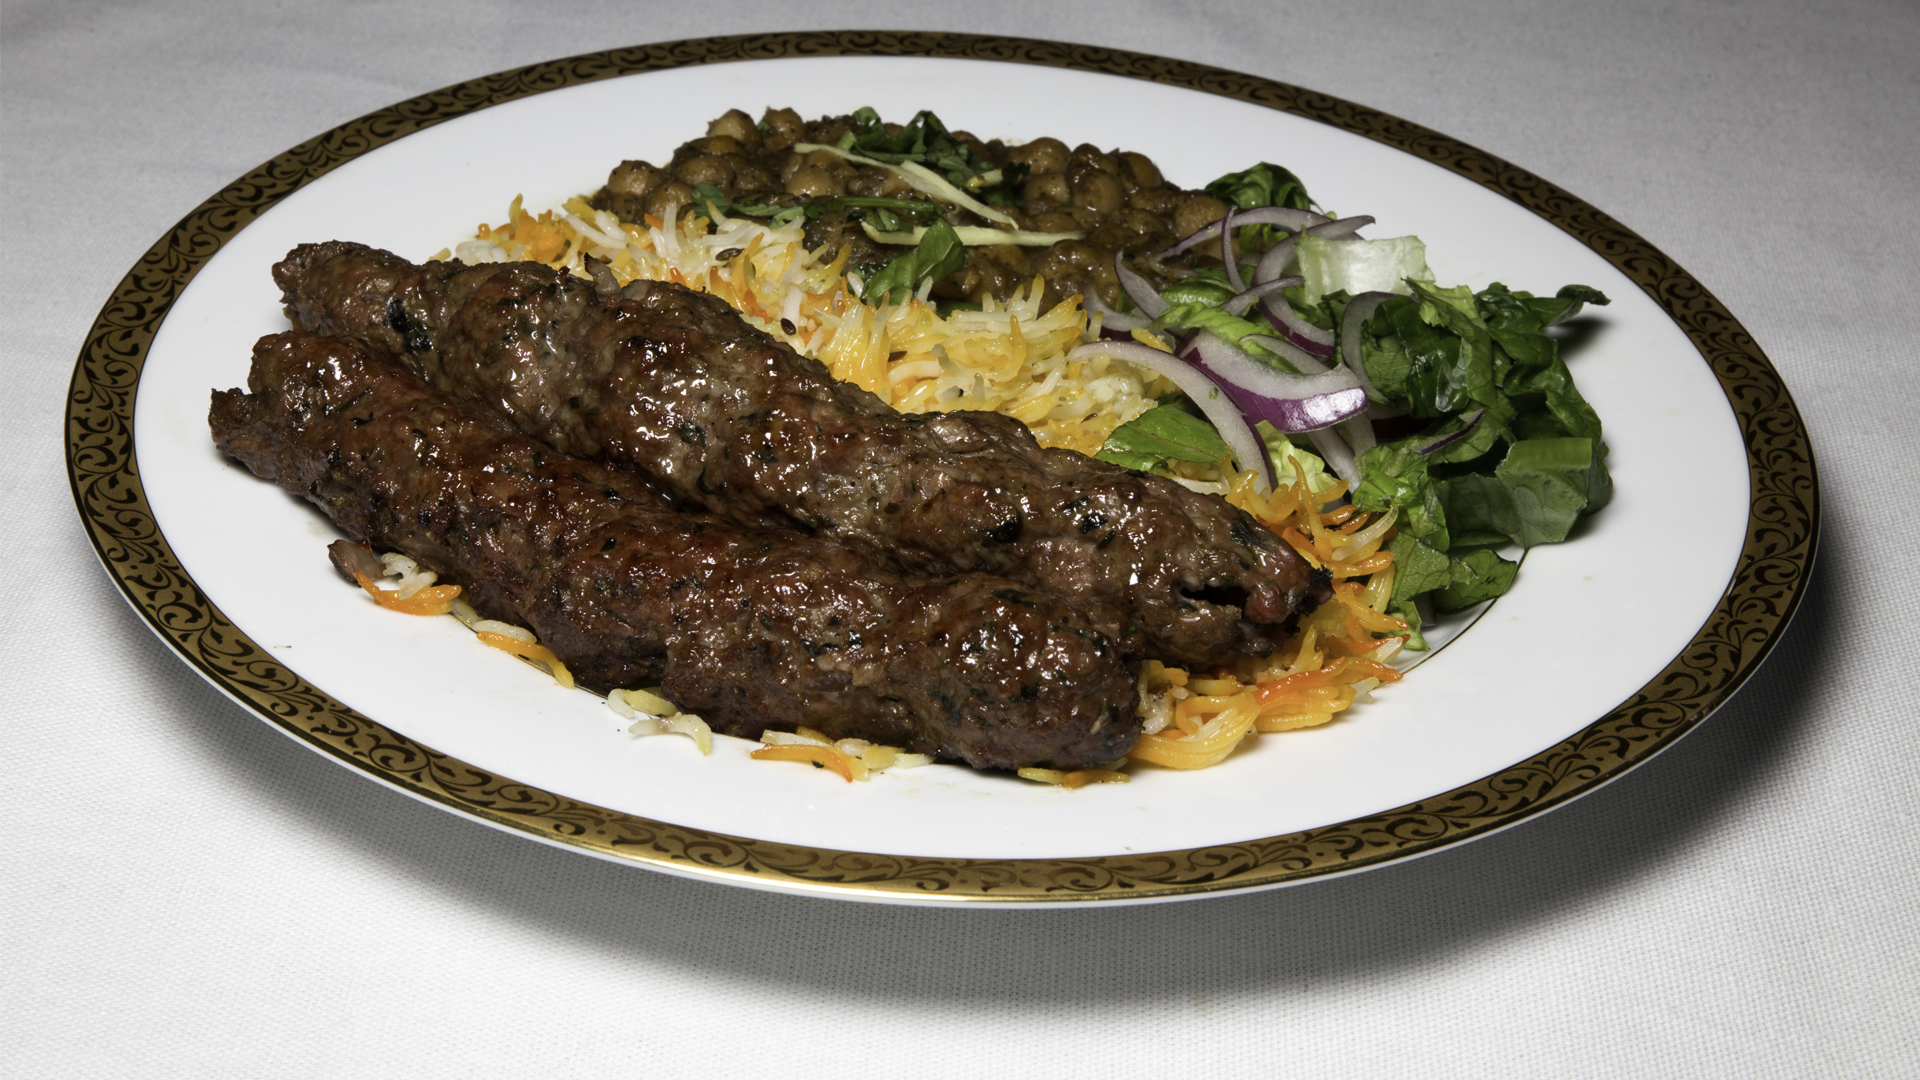 Resham Beef Meal